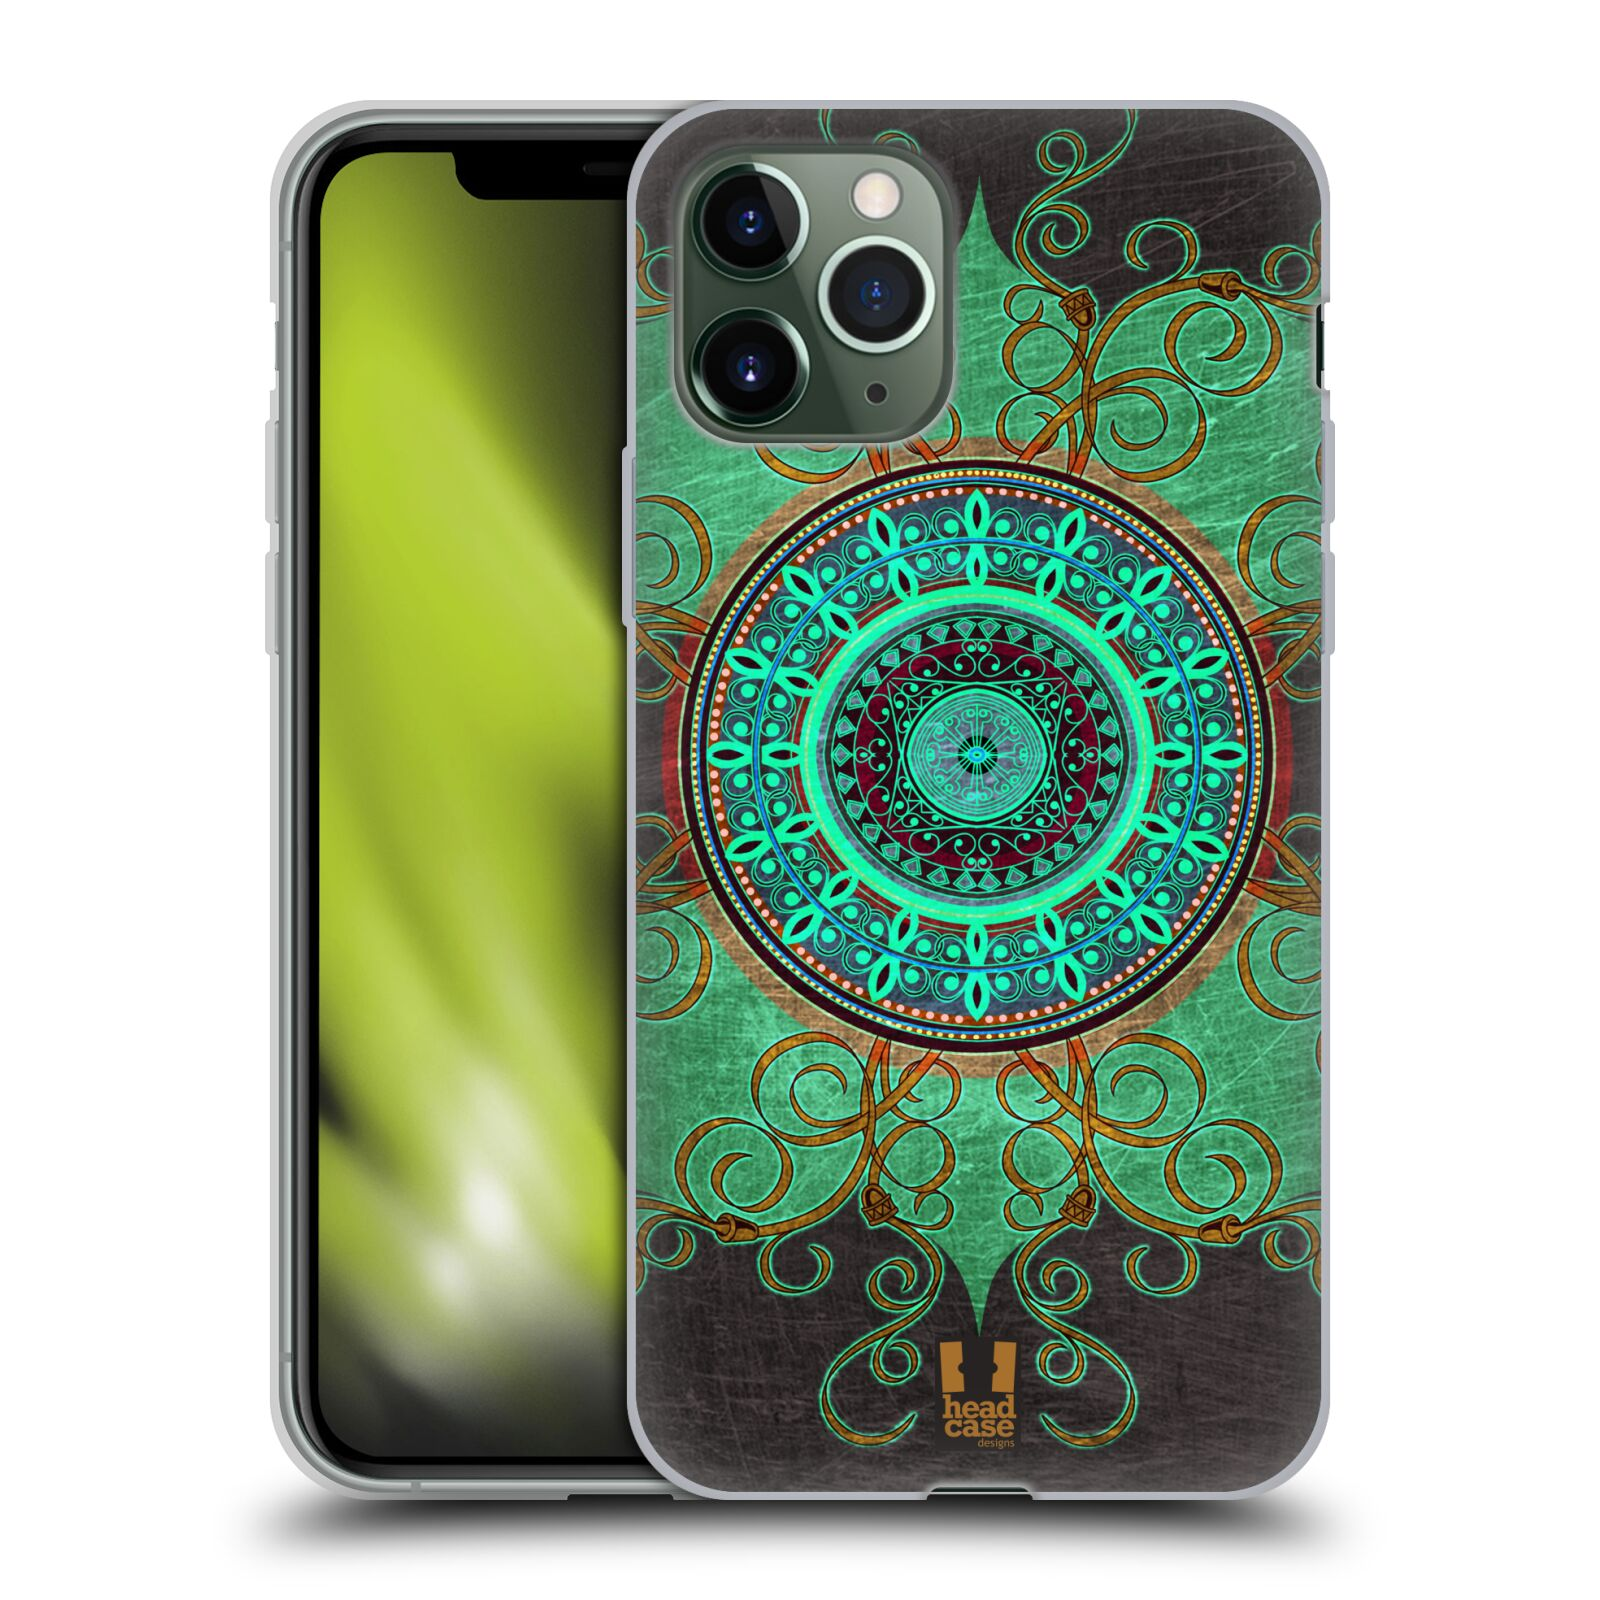 vodotesny obaly iphone 6s plus - Silikonové pouzdro na mobil Apple iPhone 11 Pro - Head Case - ARAB MANDALA